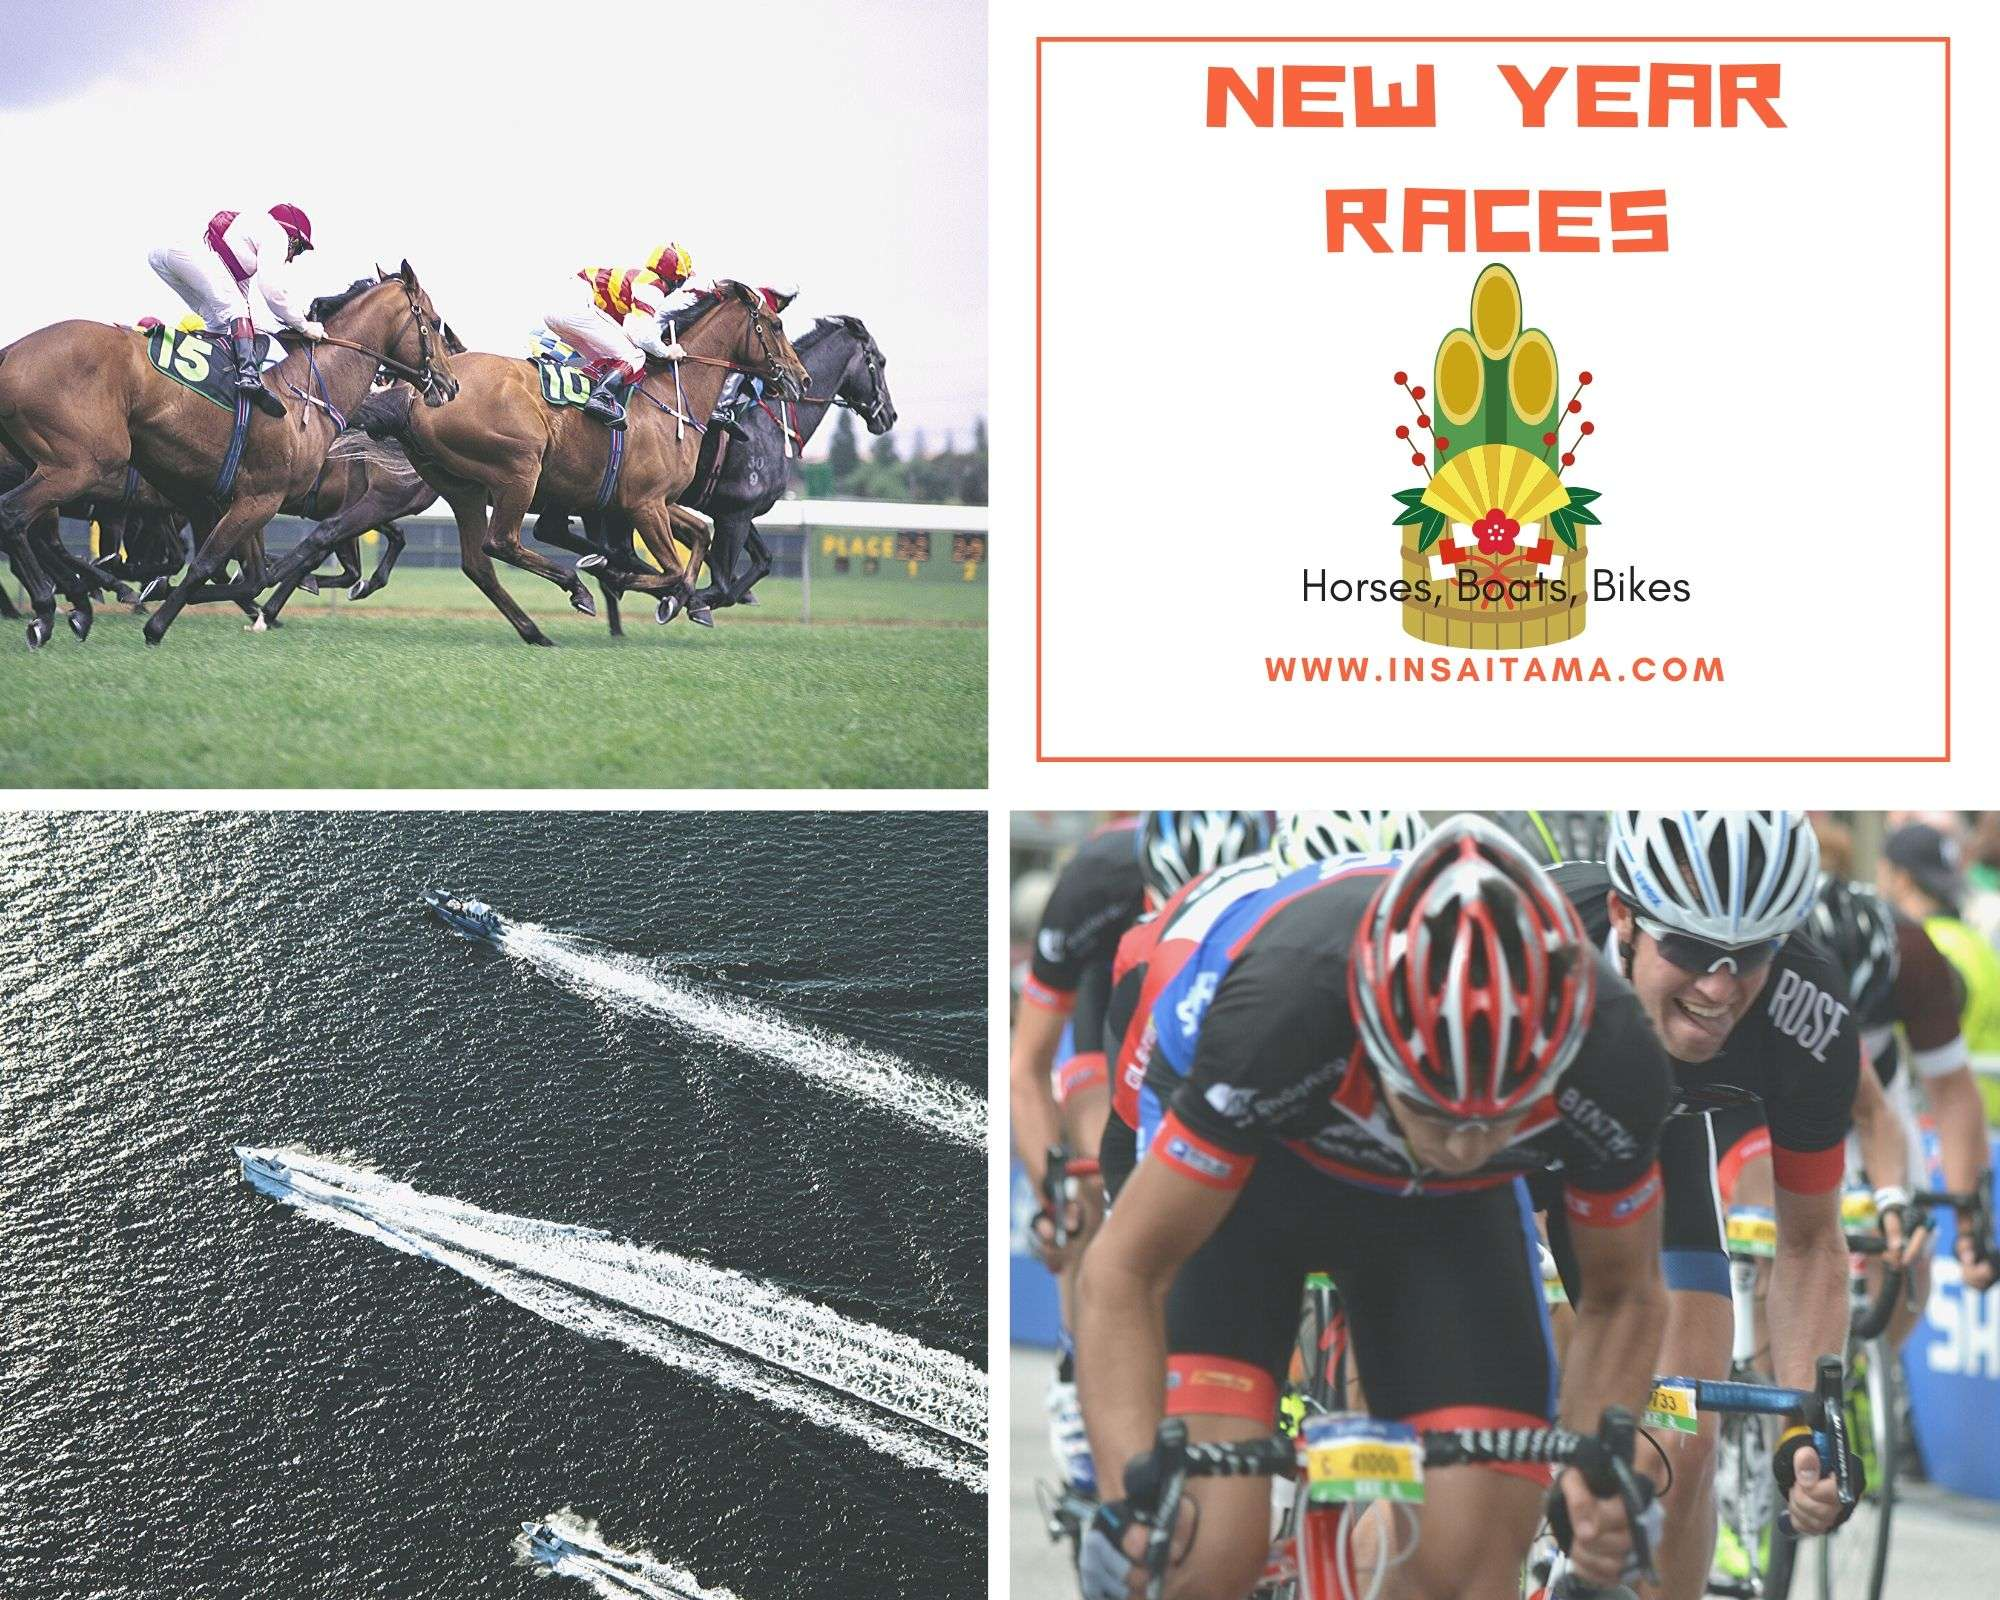 New Year Races 2020